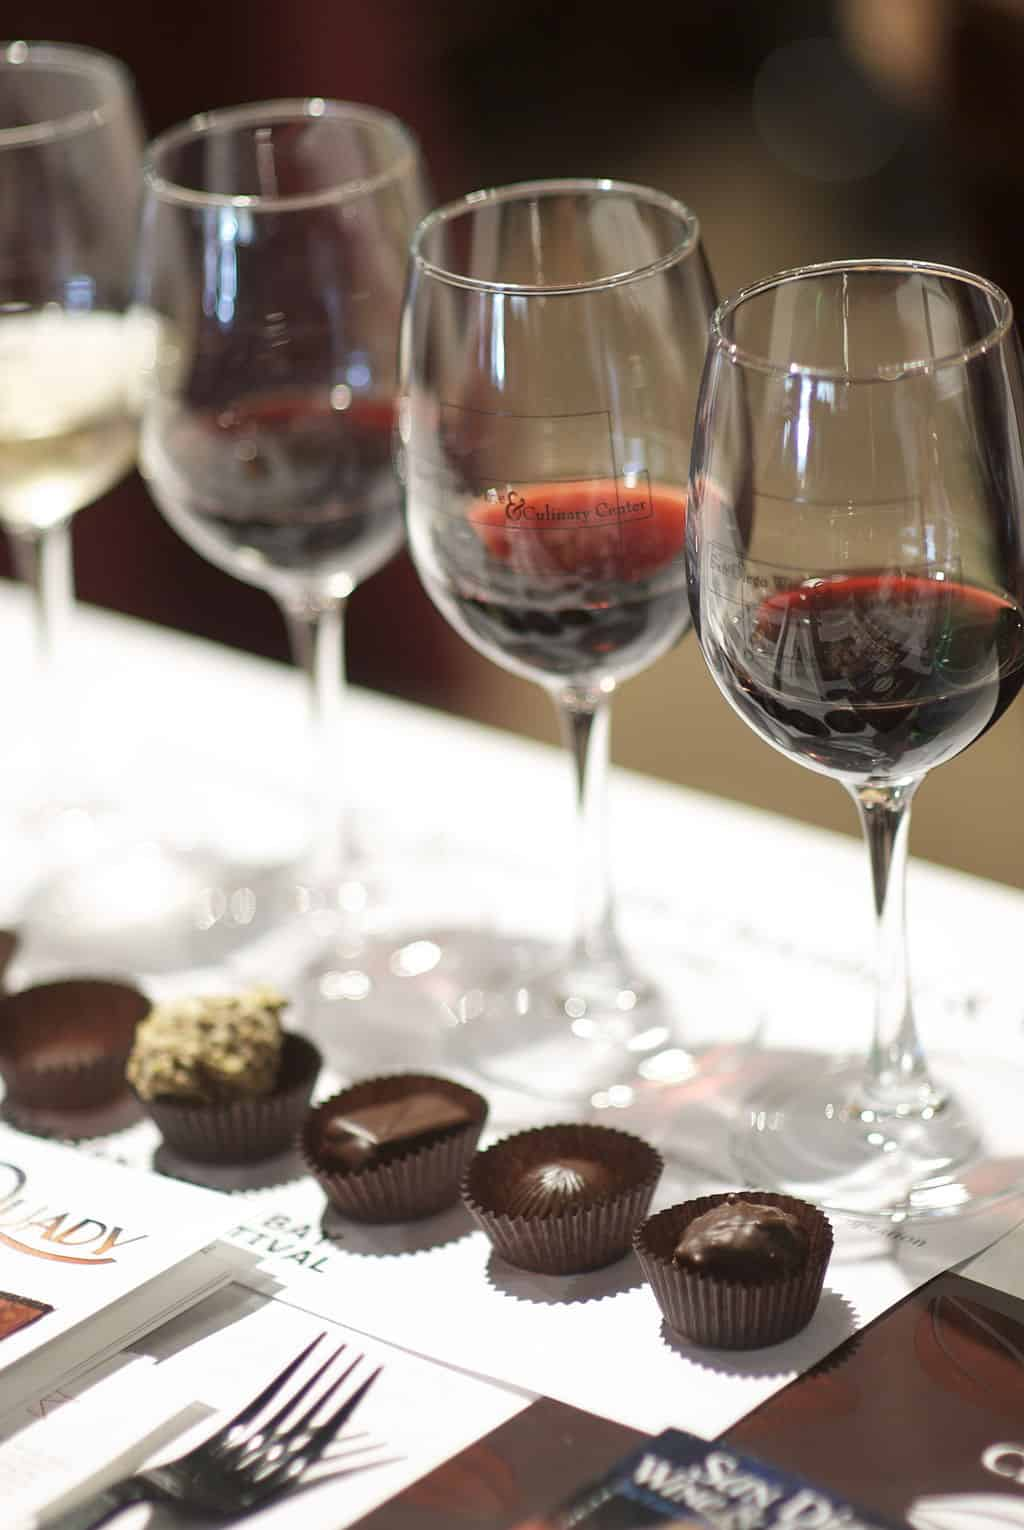 A port and chocolate pairing brings out the best in each.